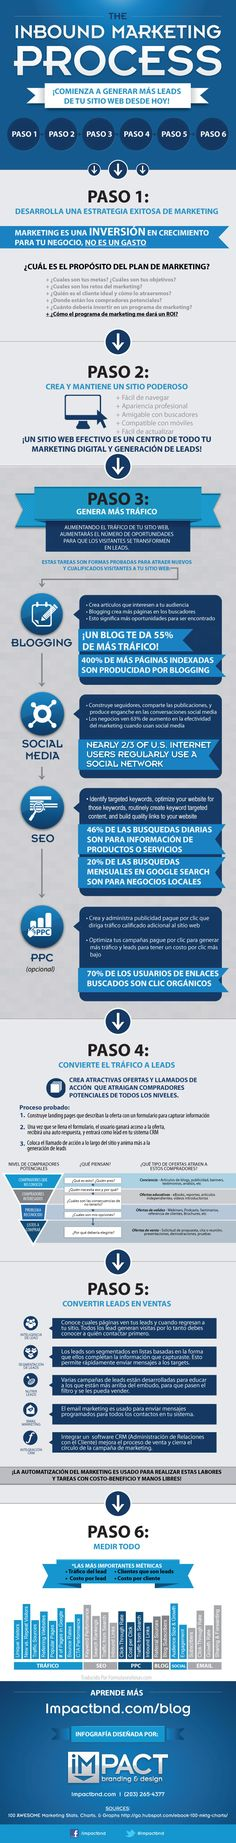 Pasos para una estrategia completa de marketing digital #infografias #marketing buen resumen paso a paso